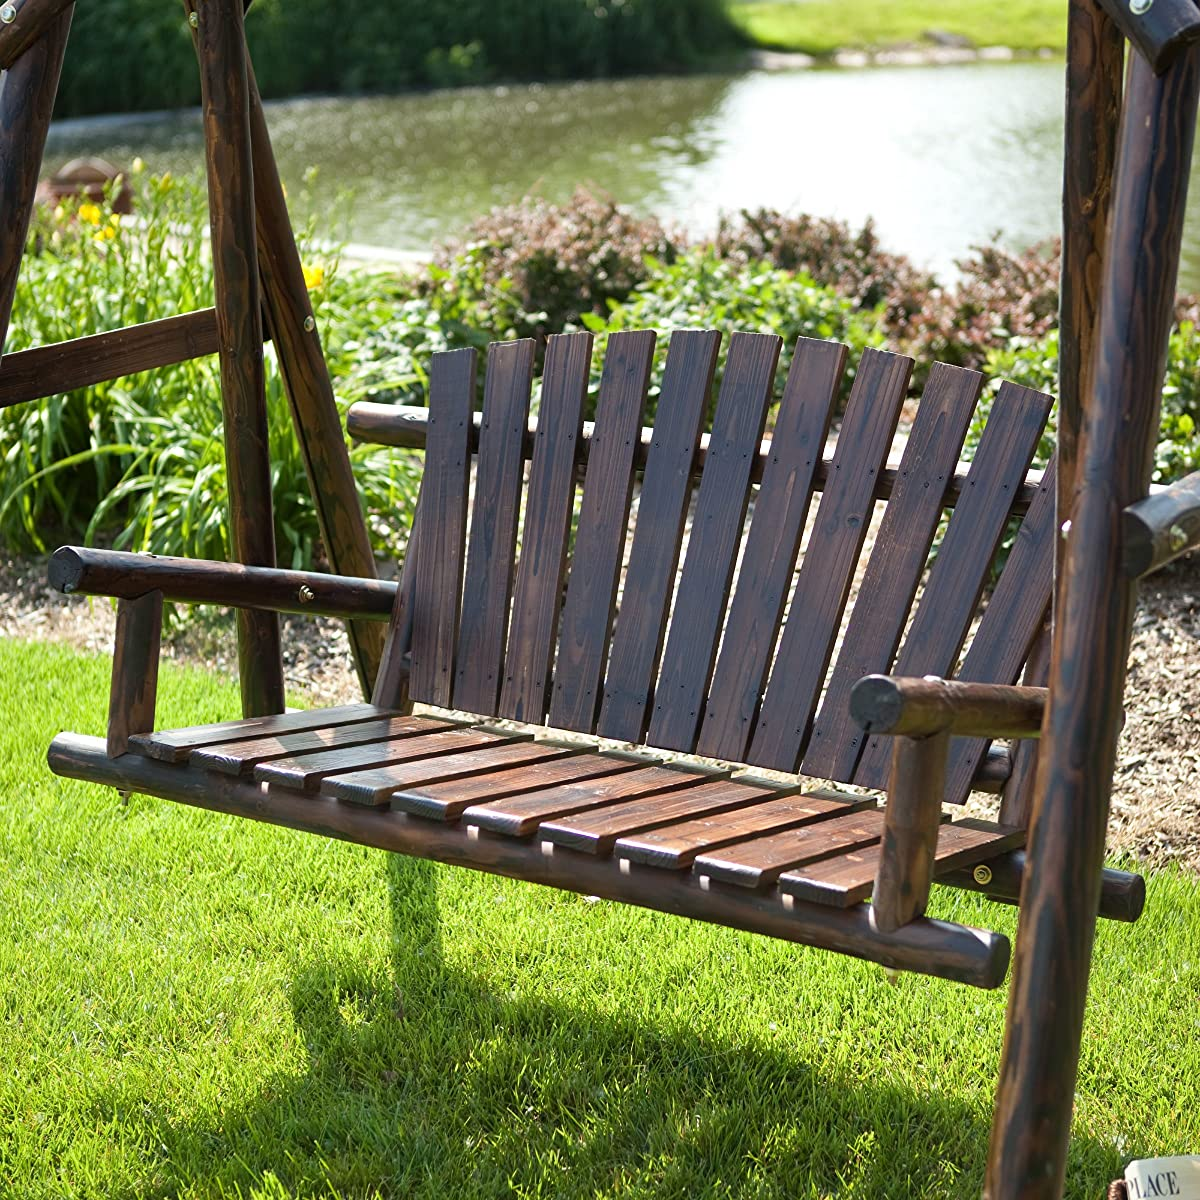 Wooden Porch Swing - Rustic Torched Log Curved Back Porch Swing and A-frame Set, Wooden Swing Bench